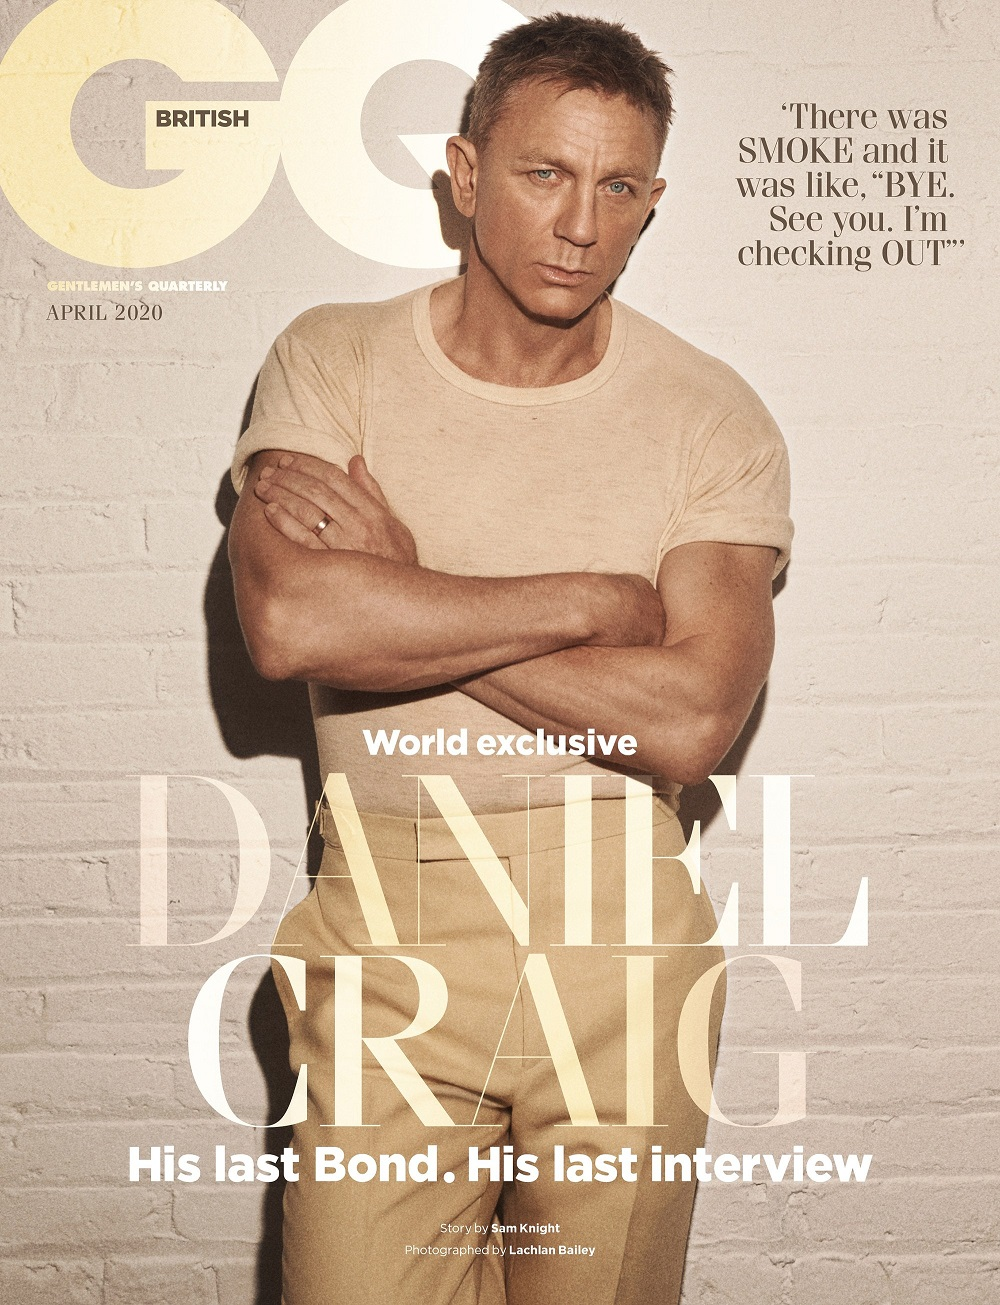 Daniel Craig is featured on the cover of the April 2020 Issue of British GQ